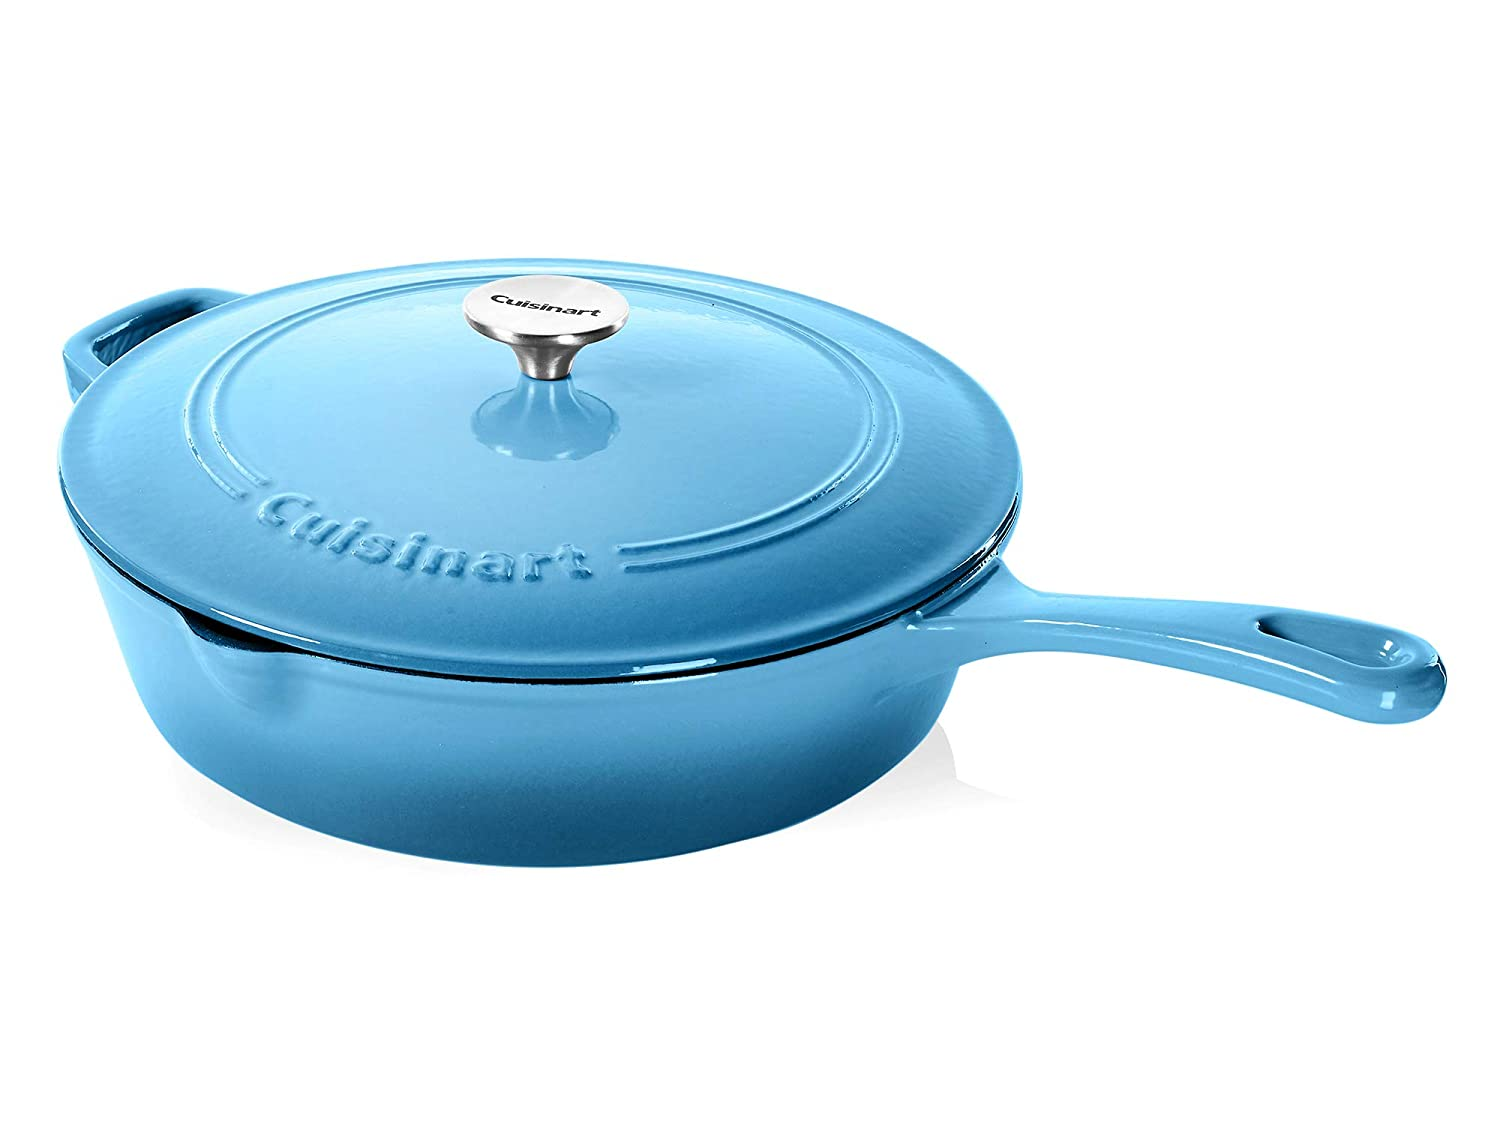 Cuisinart Cast Iron Chicken Fryer, Blue Gradient, 12""